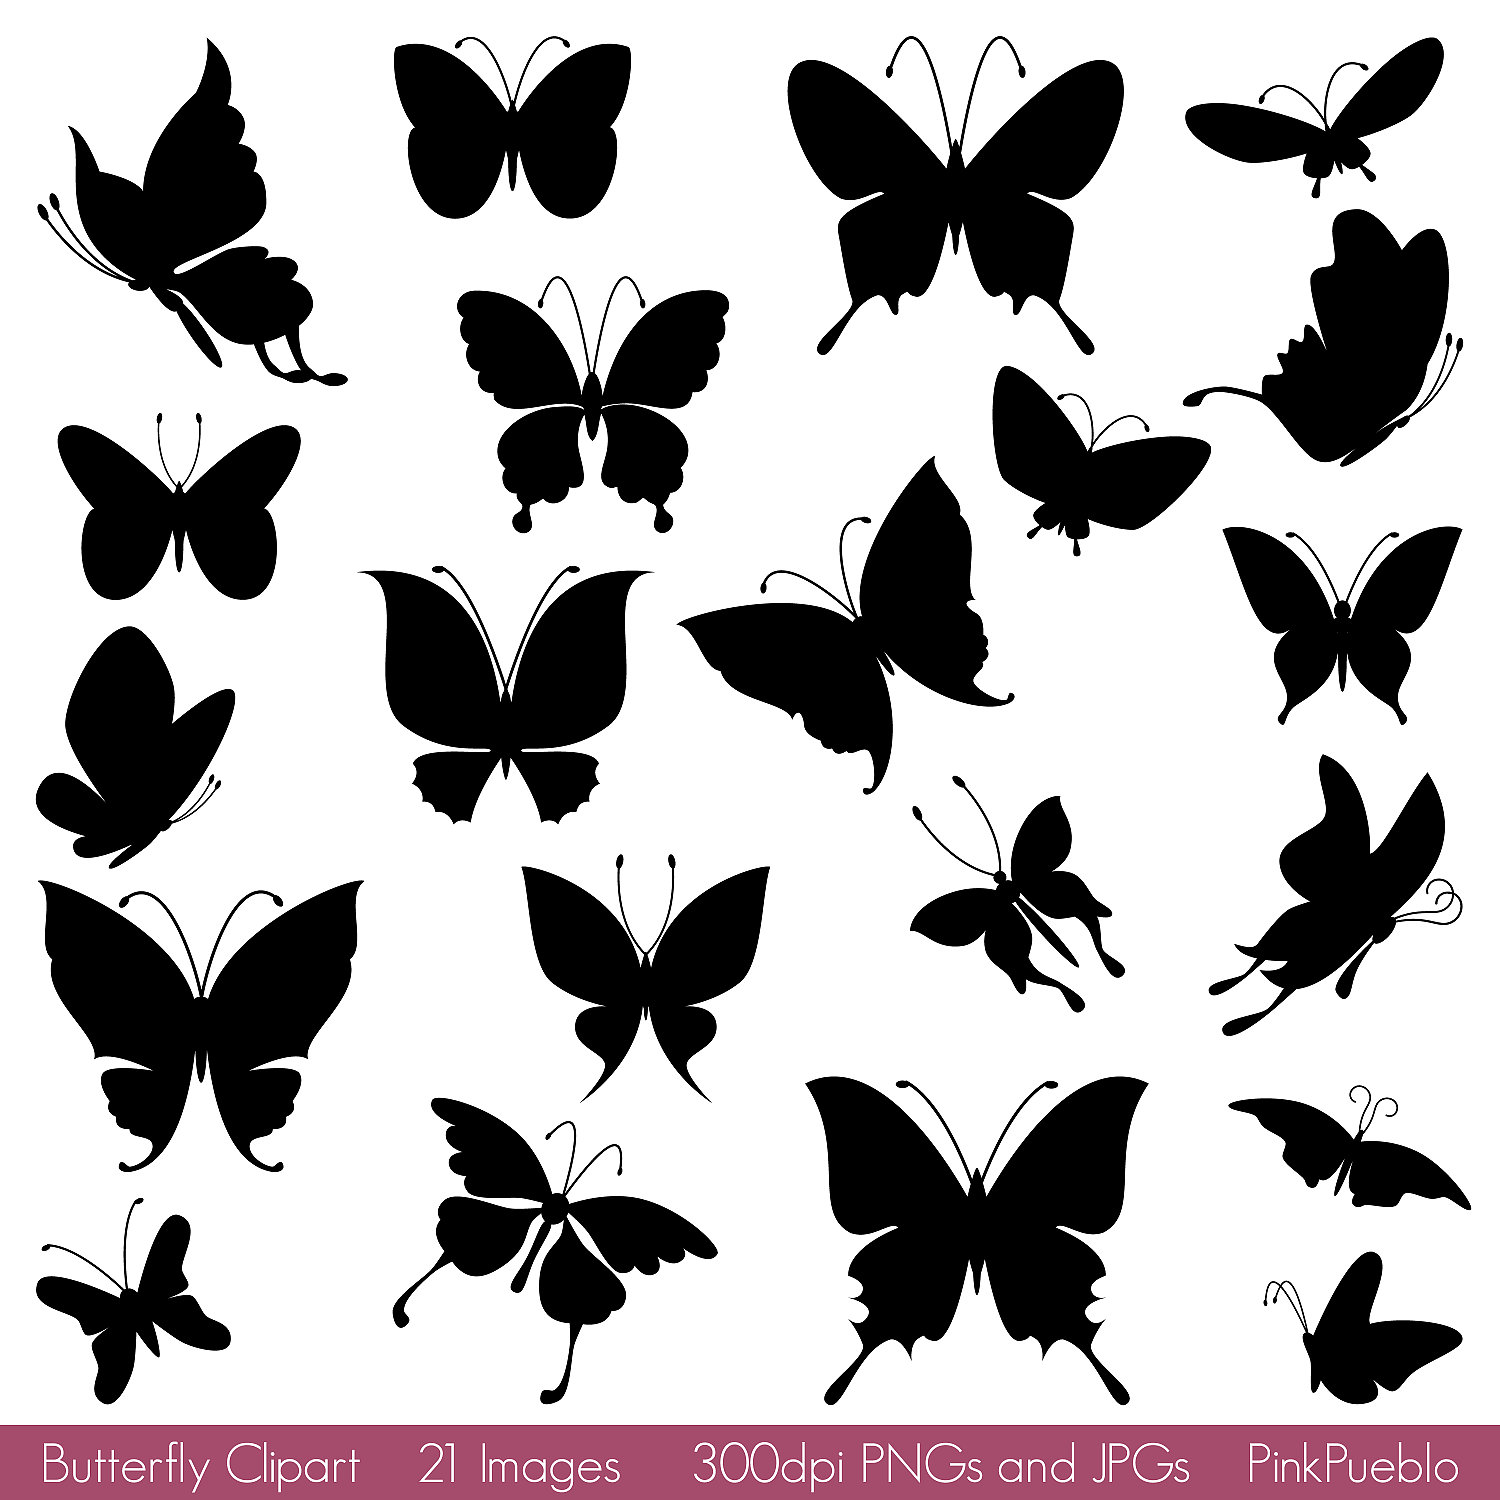 Butterfly Silhouettes Clipart Clip Art, Butterfly Clipart Clip Art.